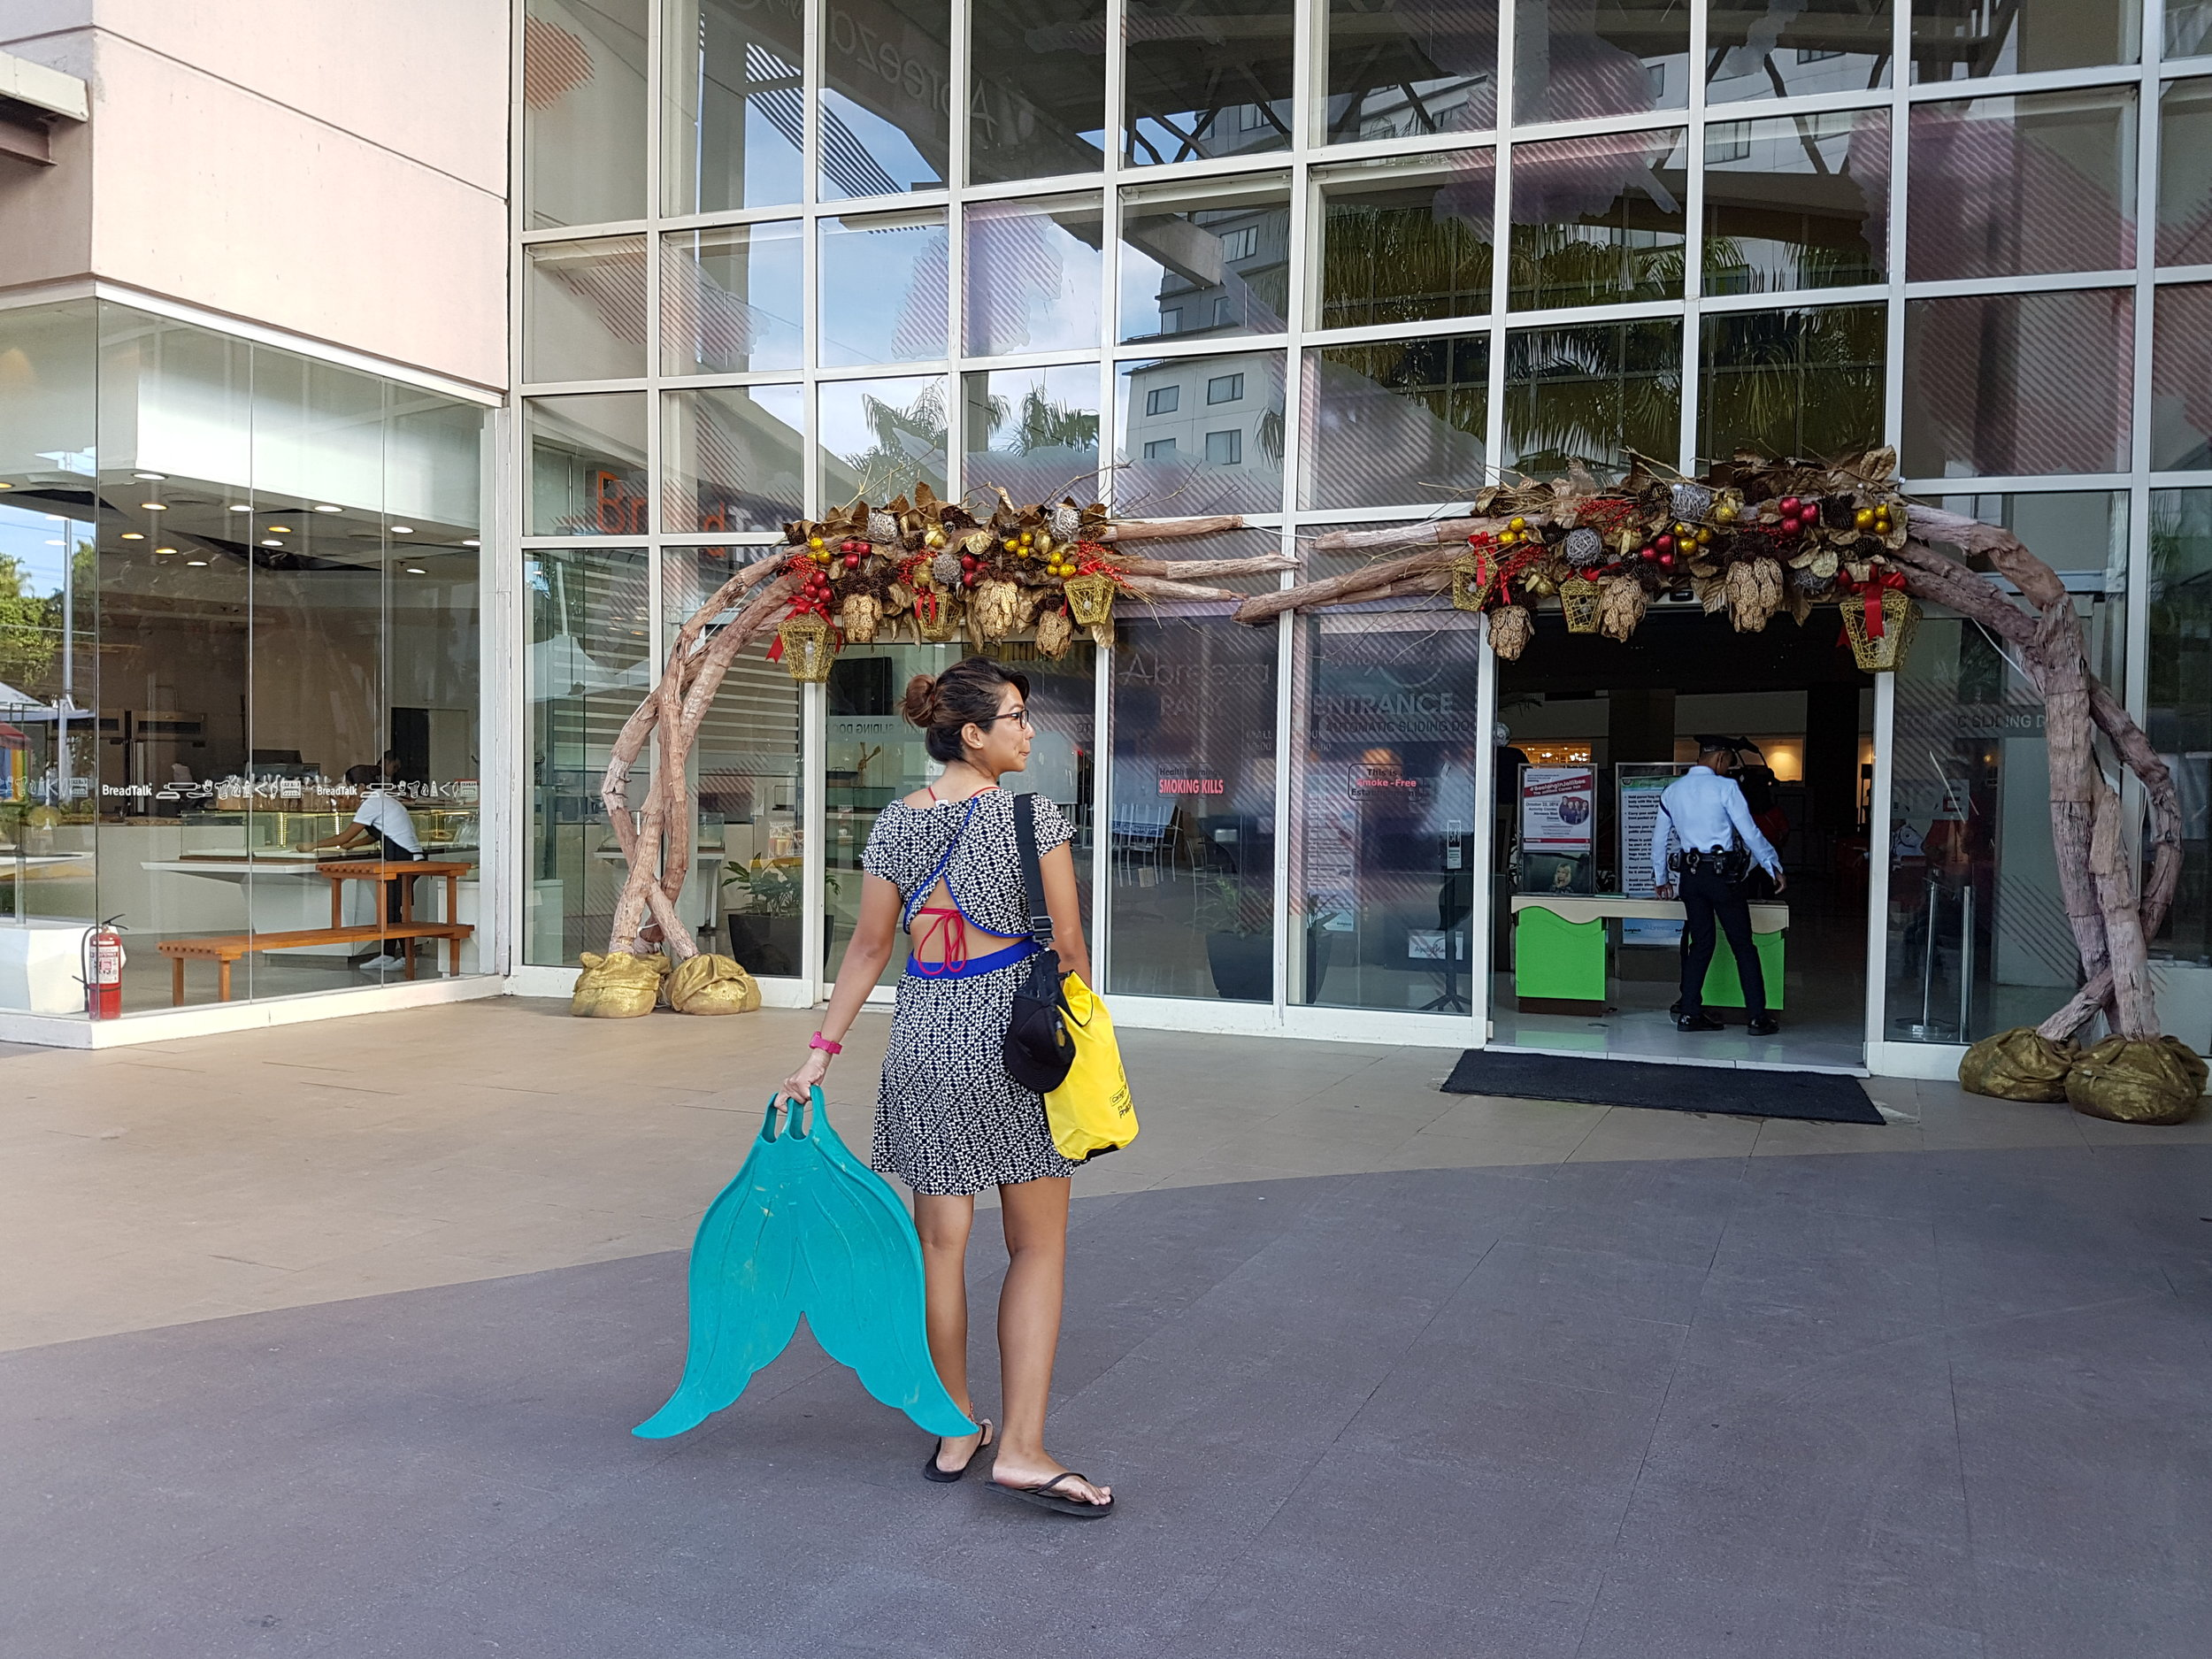 Shamelessly walking into malls with your fins - yep, signs of a mermaid. *Overswim / dress: Roxy | Bikini top: Calavera | Dry bag from DOT R13 (yey!)*